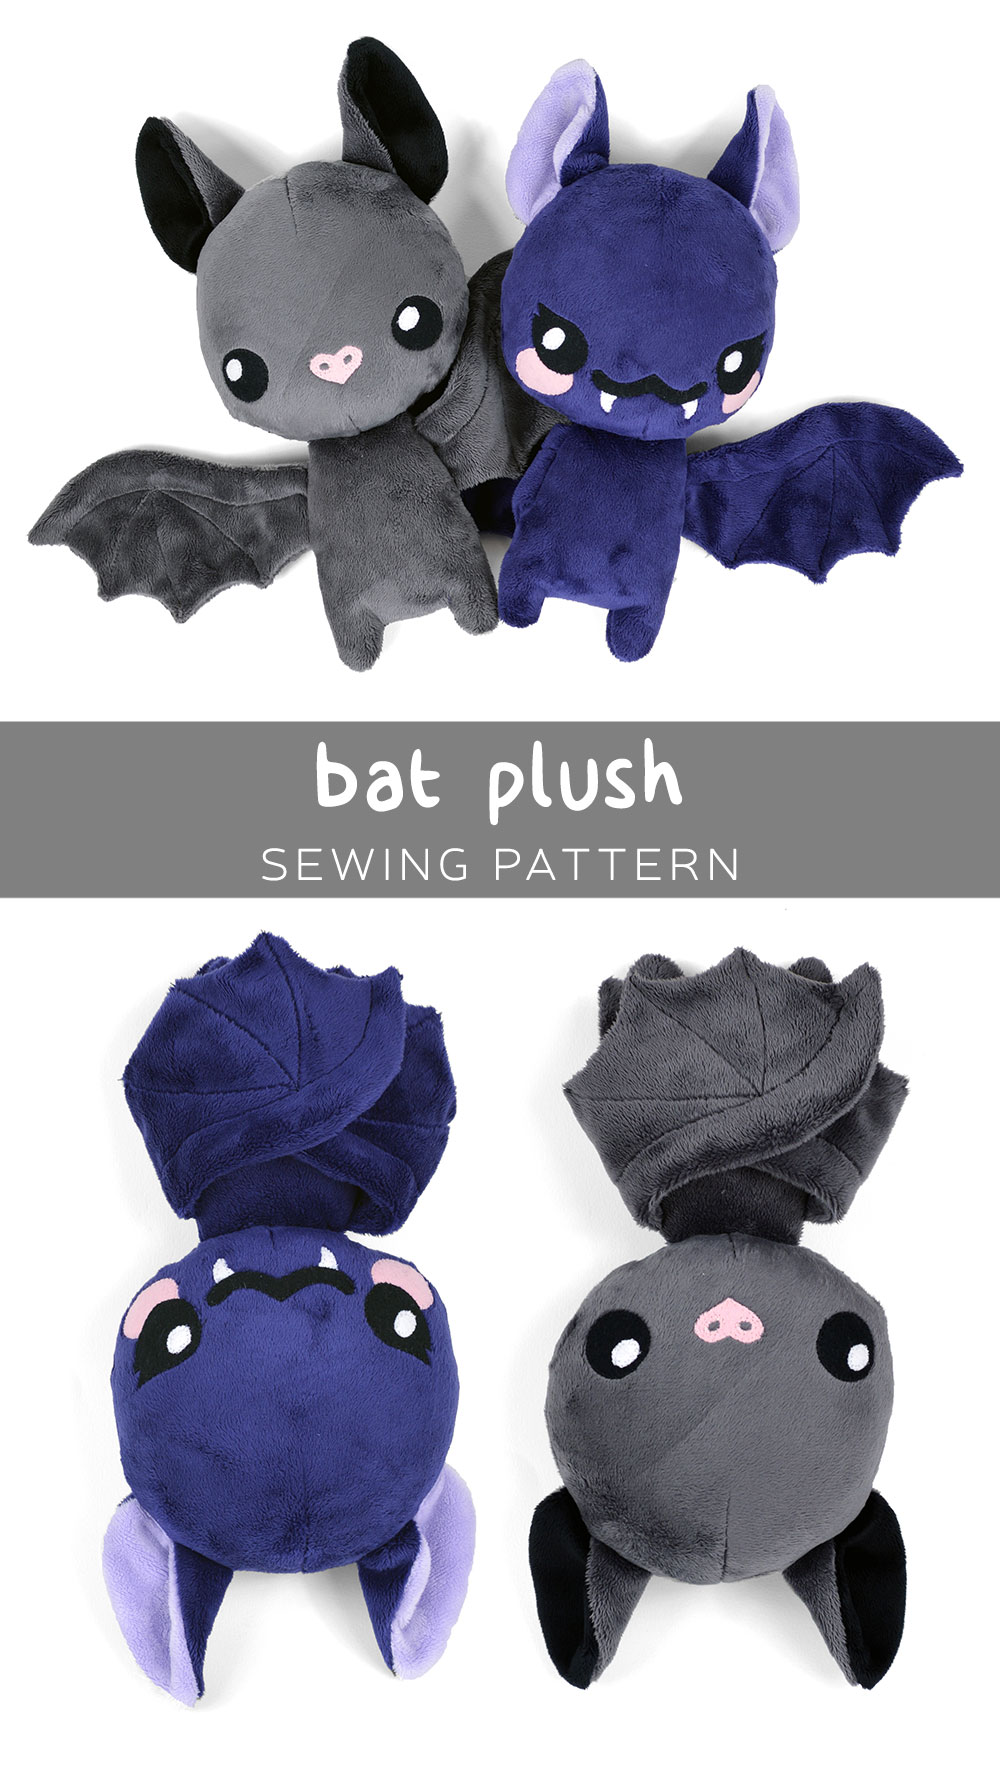 graphic about Free Printable Stuffed Animal Patterns identified as Totally free Routine Friday! Bat Plush Choly Knight